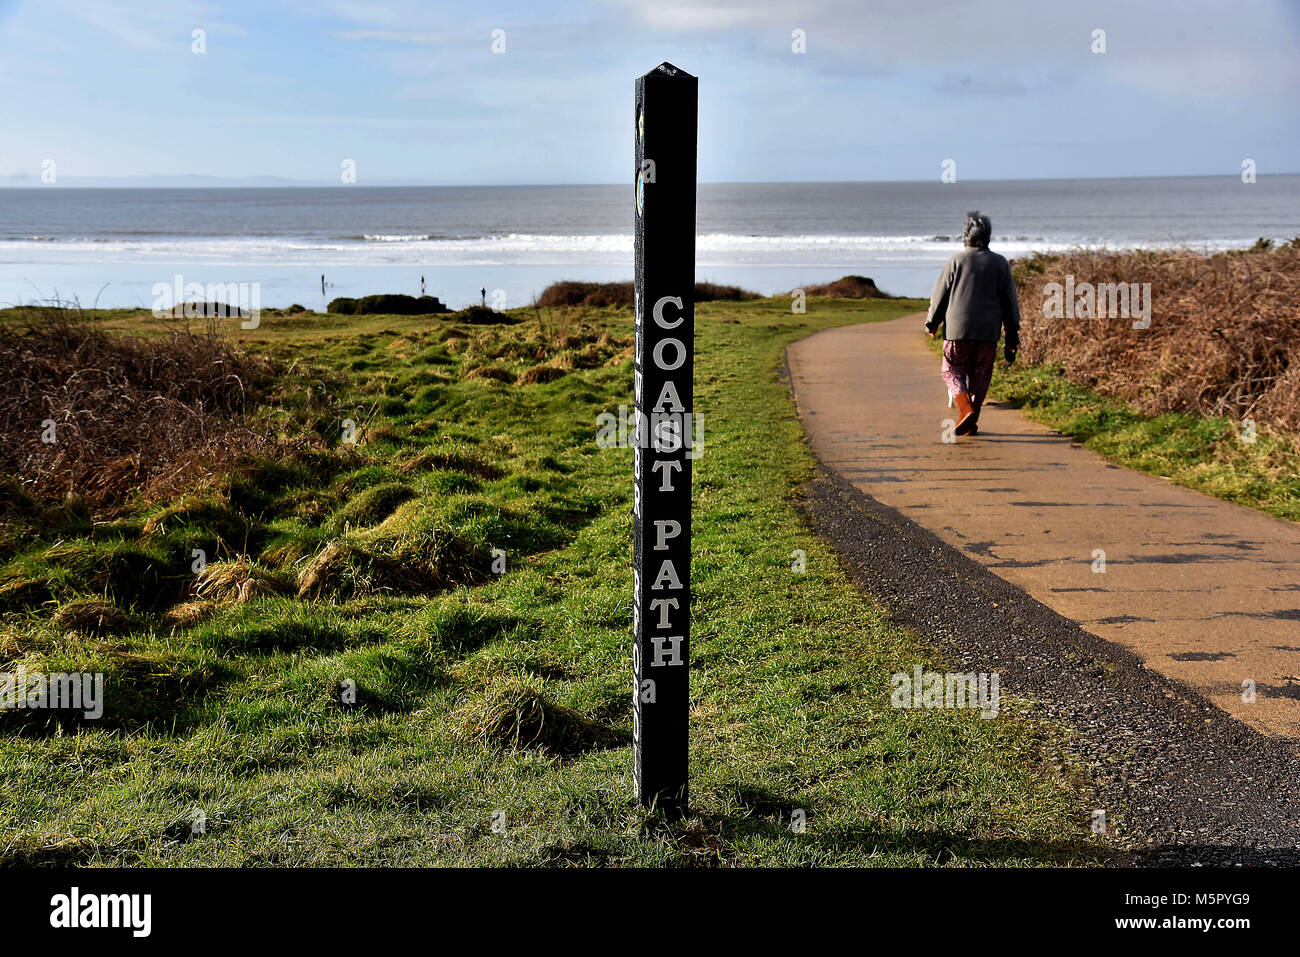 Pictures show the Wales Coas tPath and the Royal Porthcawl Golf Club which runs adjacent to the Coast  Path at Porthcawl - Stock Image